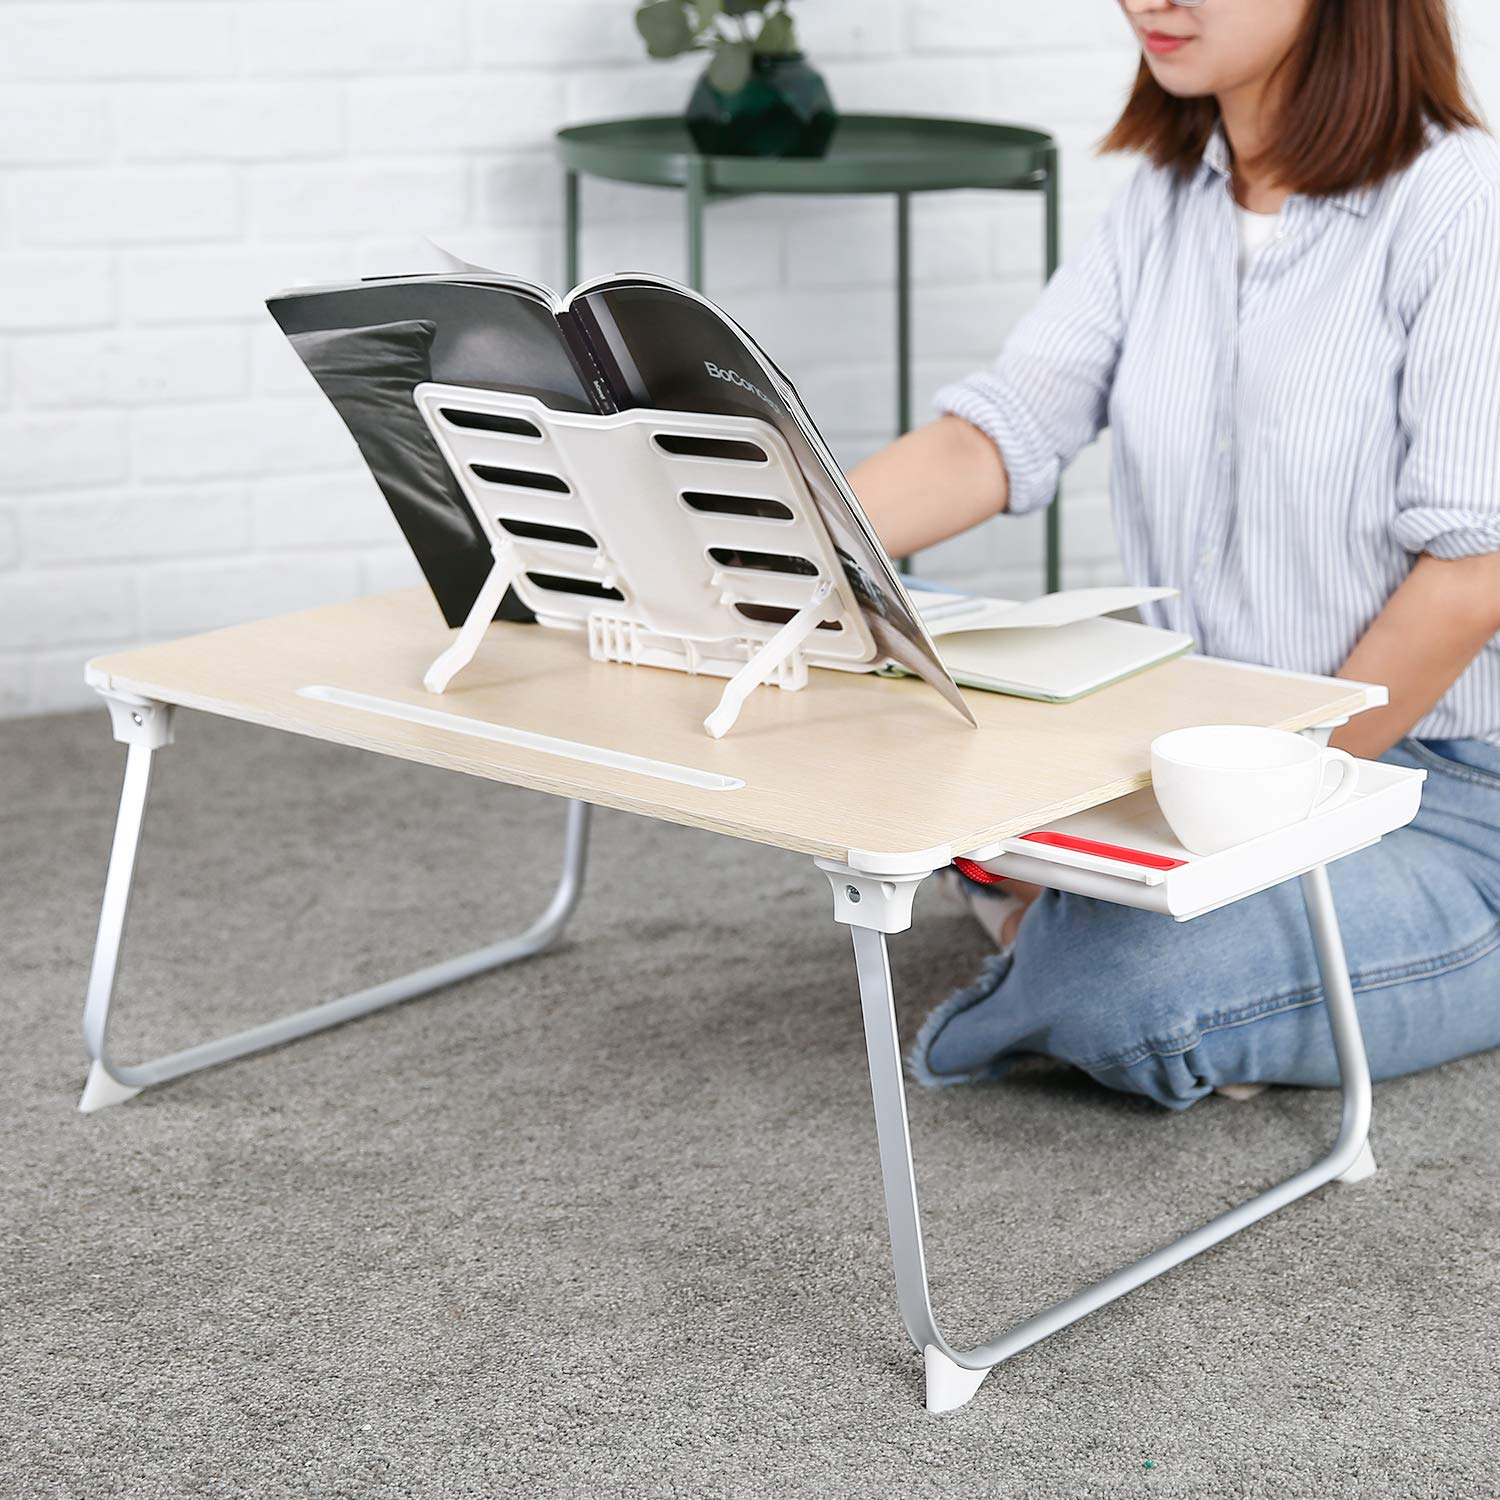 AUKEY Laptop Bed Table (Large Size) Foldable Portable Laptop Stand with Aluminum Alloy Legs, Book Stand and Drawer for Reading, Writing, and Working by AUKEY (Image #5)